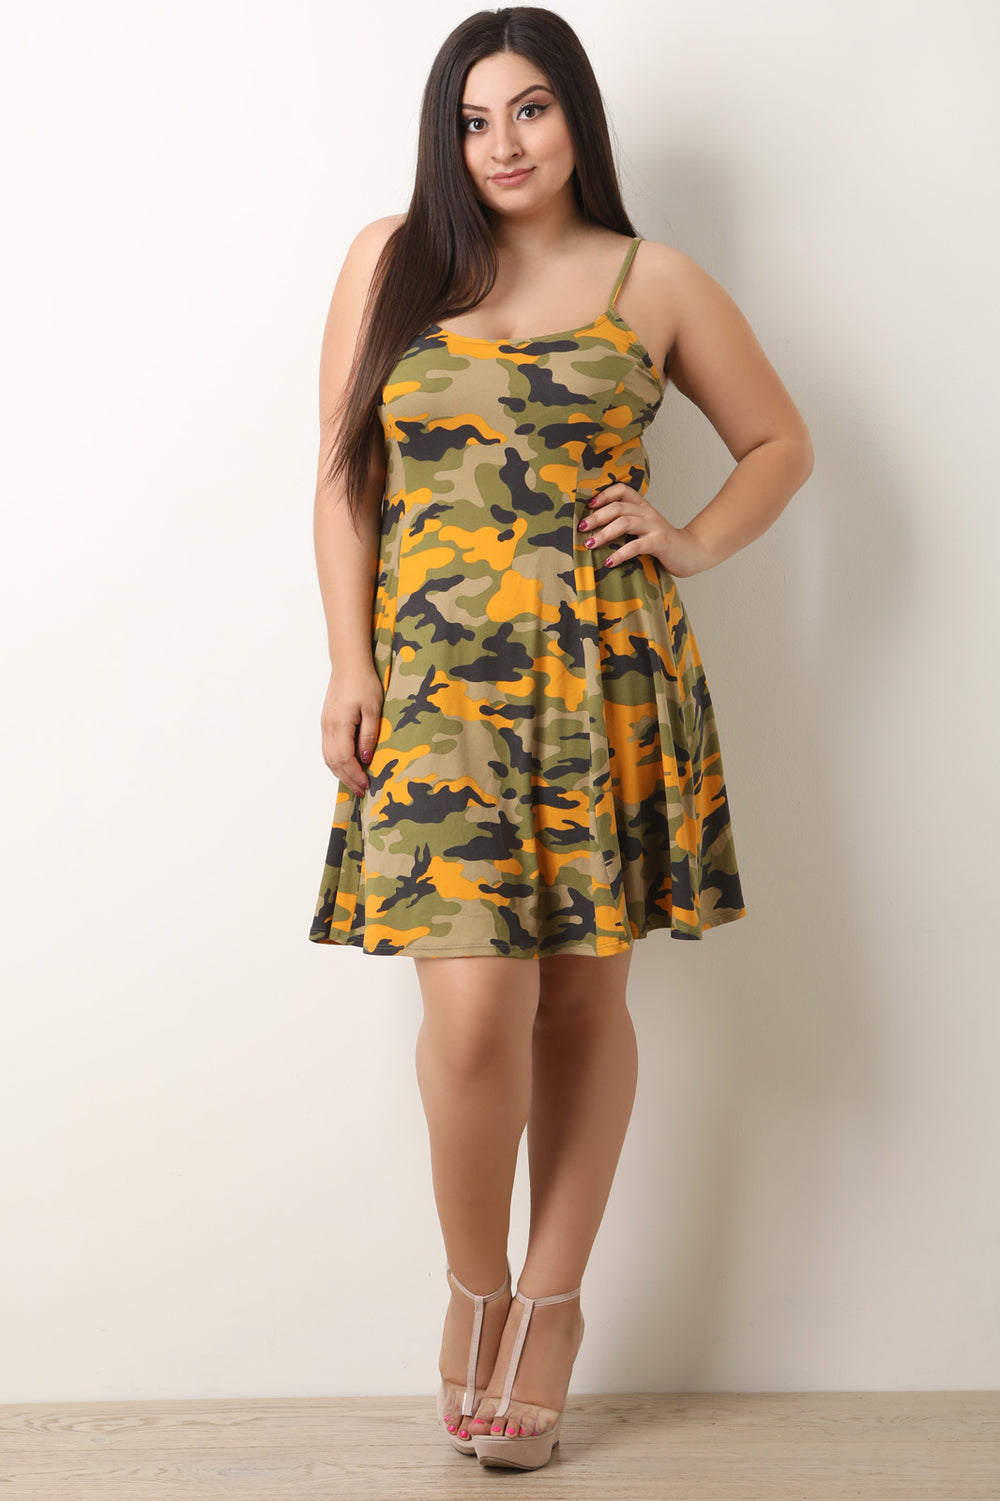 Camouflage Soft Knit Spaghetti Strap Skater Dress